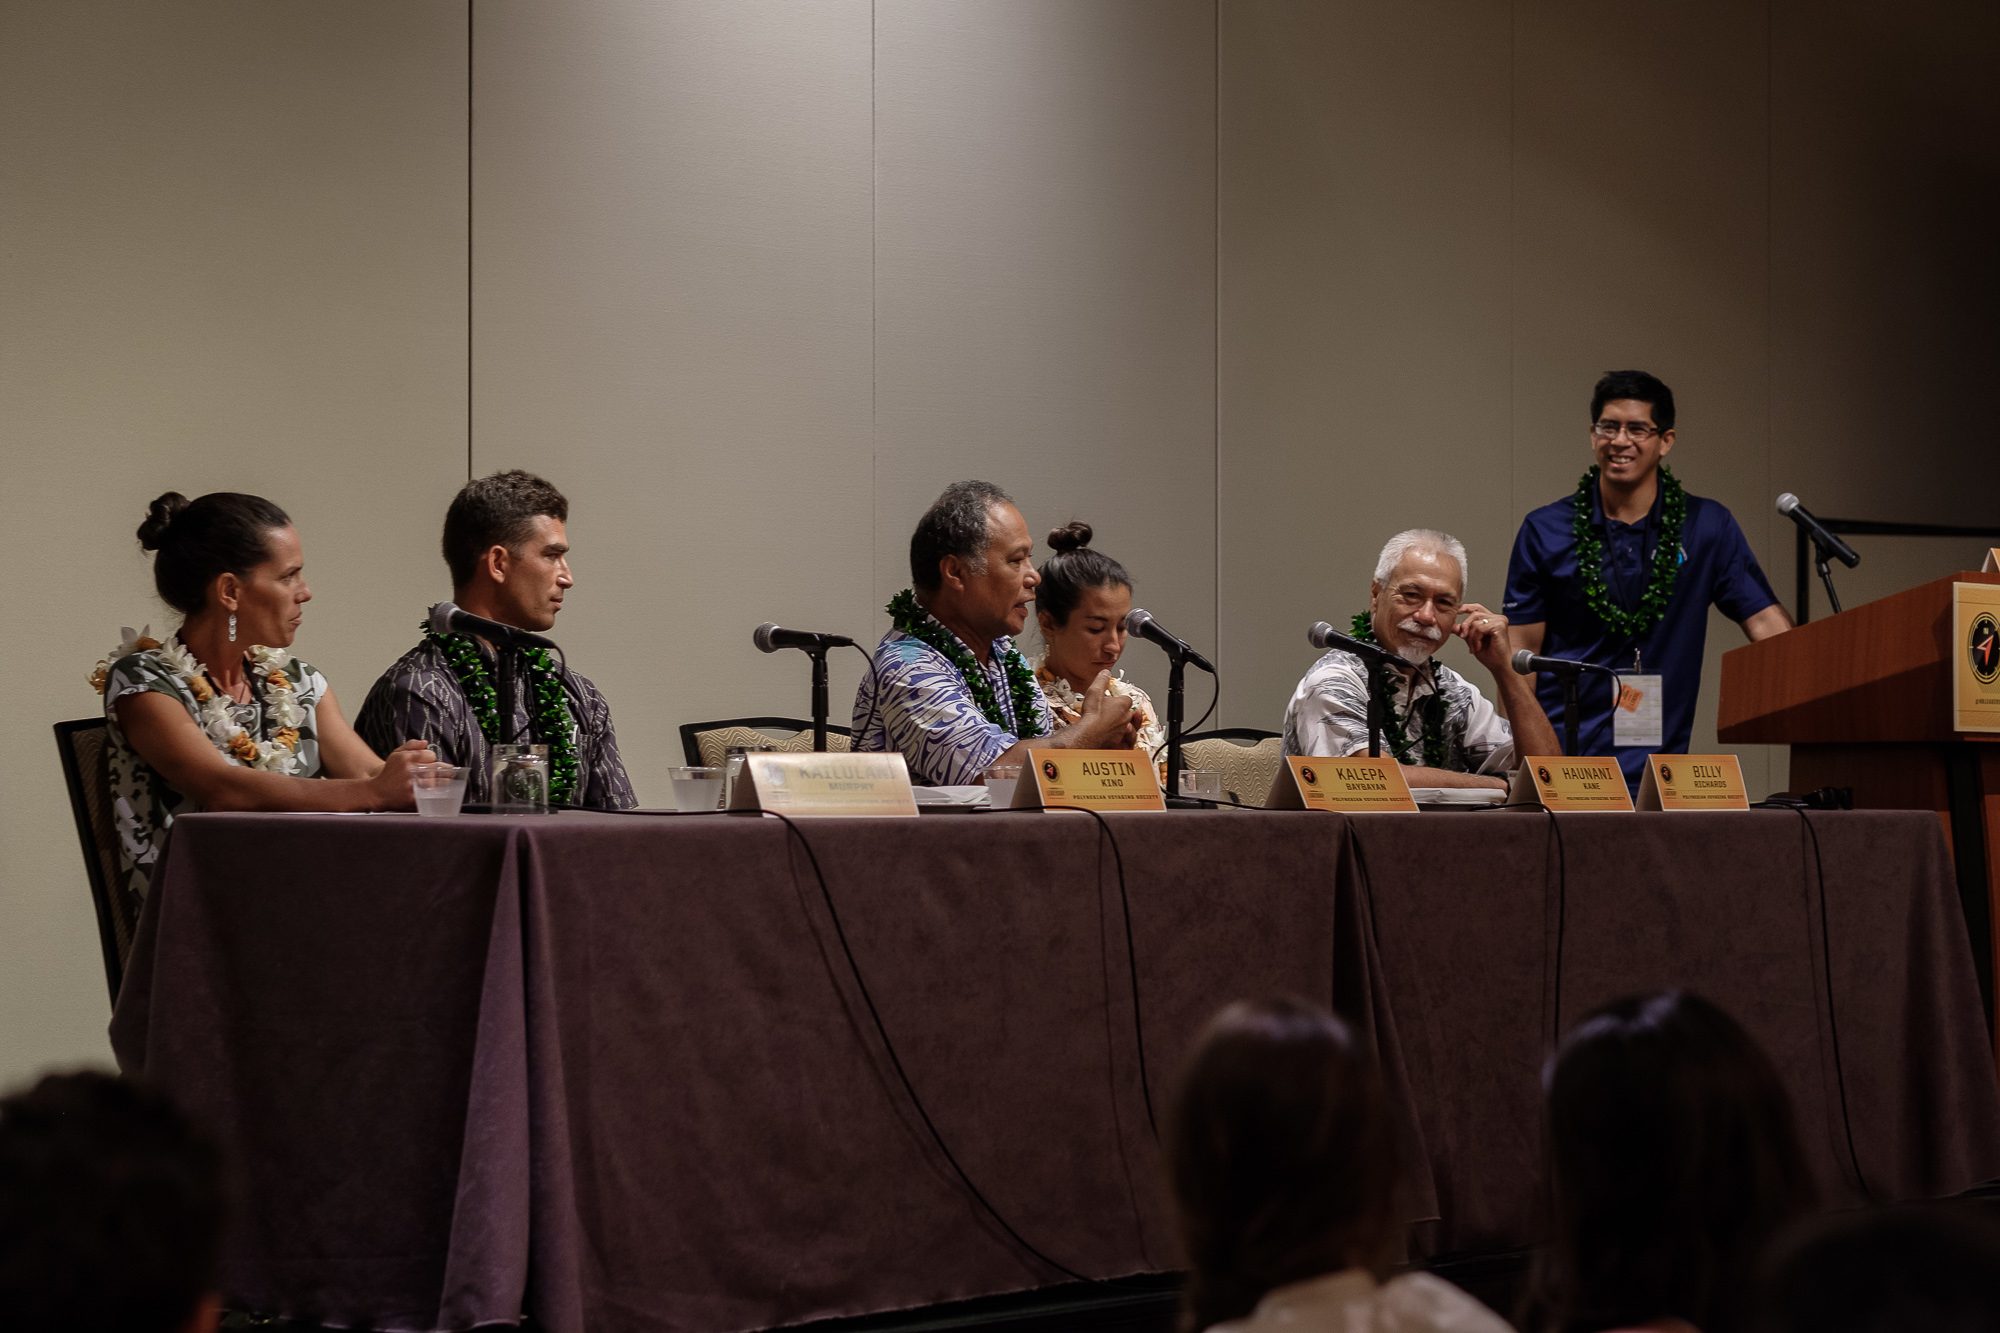 """""""Leadership Lessons From the Hokulea"""" was one of the most popular panels to attend of the day. From left to right: Navigator Kaiulani Murphy, Apprentice Navigator Austin Kino, PWO Navigator/Captain Kalepa Babayan, Assistant Navigator/Science Coordinator Haunani Kane, Billy Richards and Bryson Hoe."""